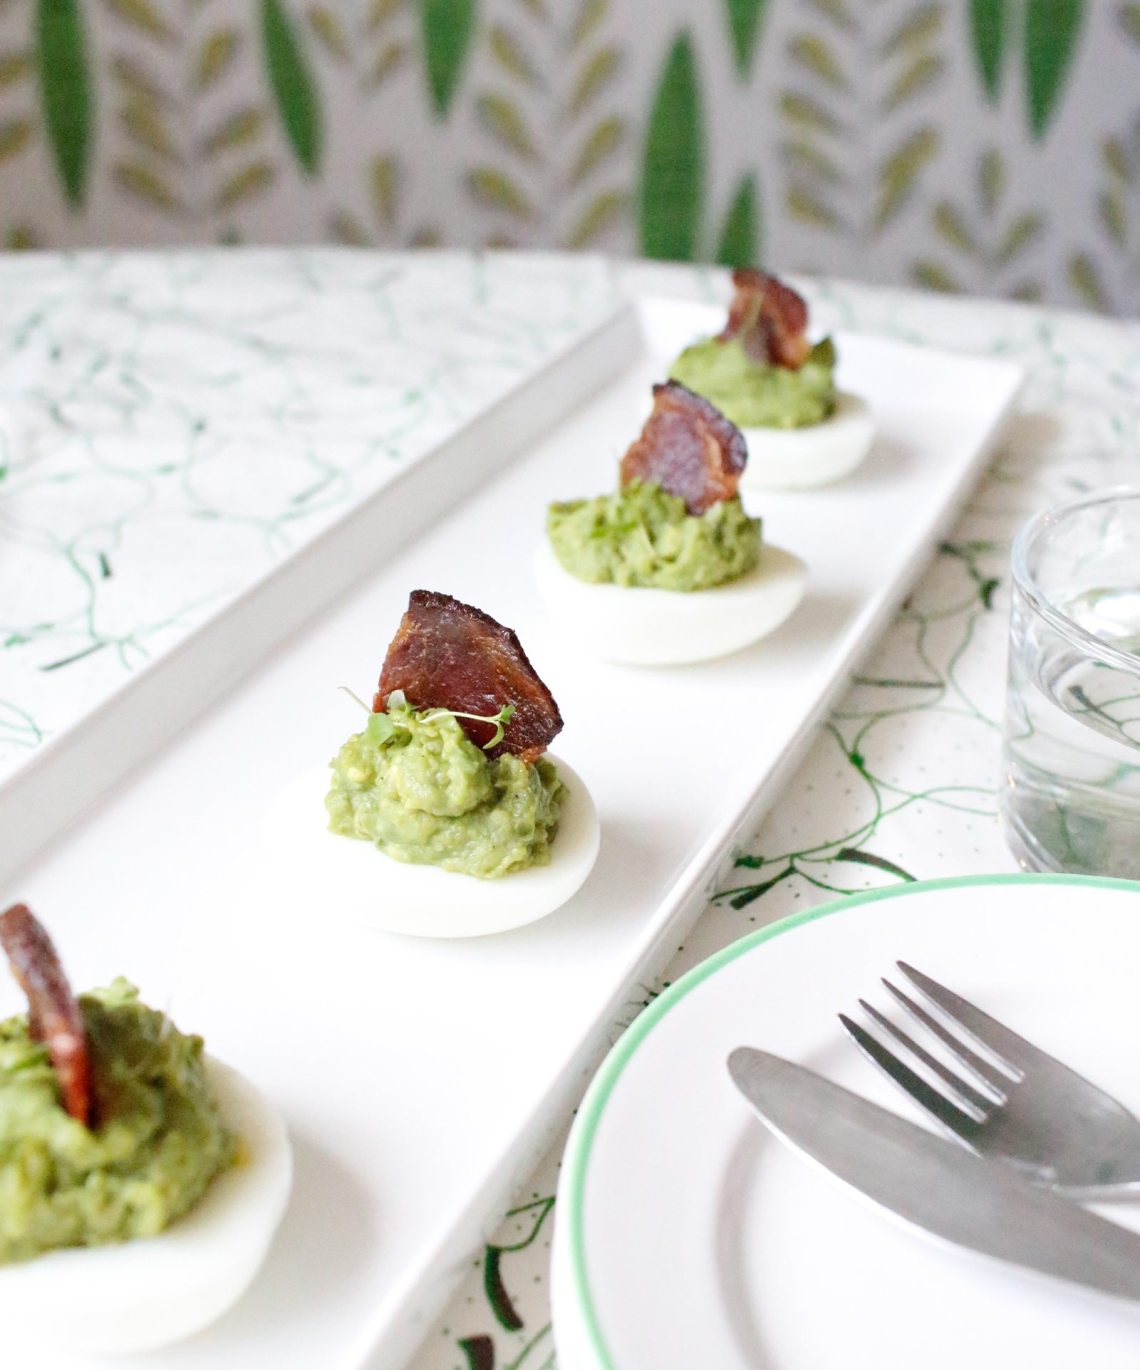 Keto avocado eggs with bacon sails